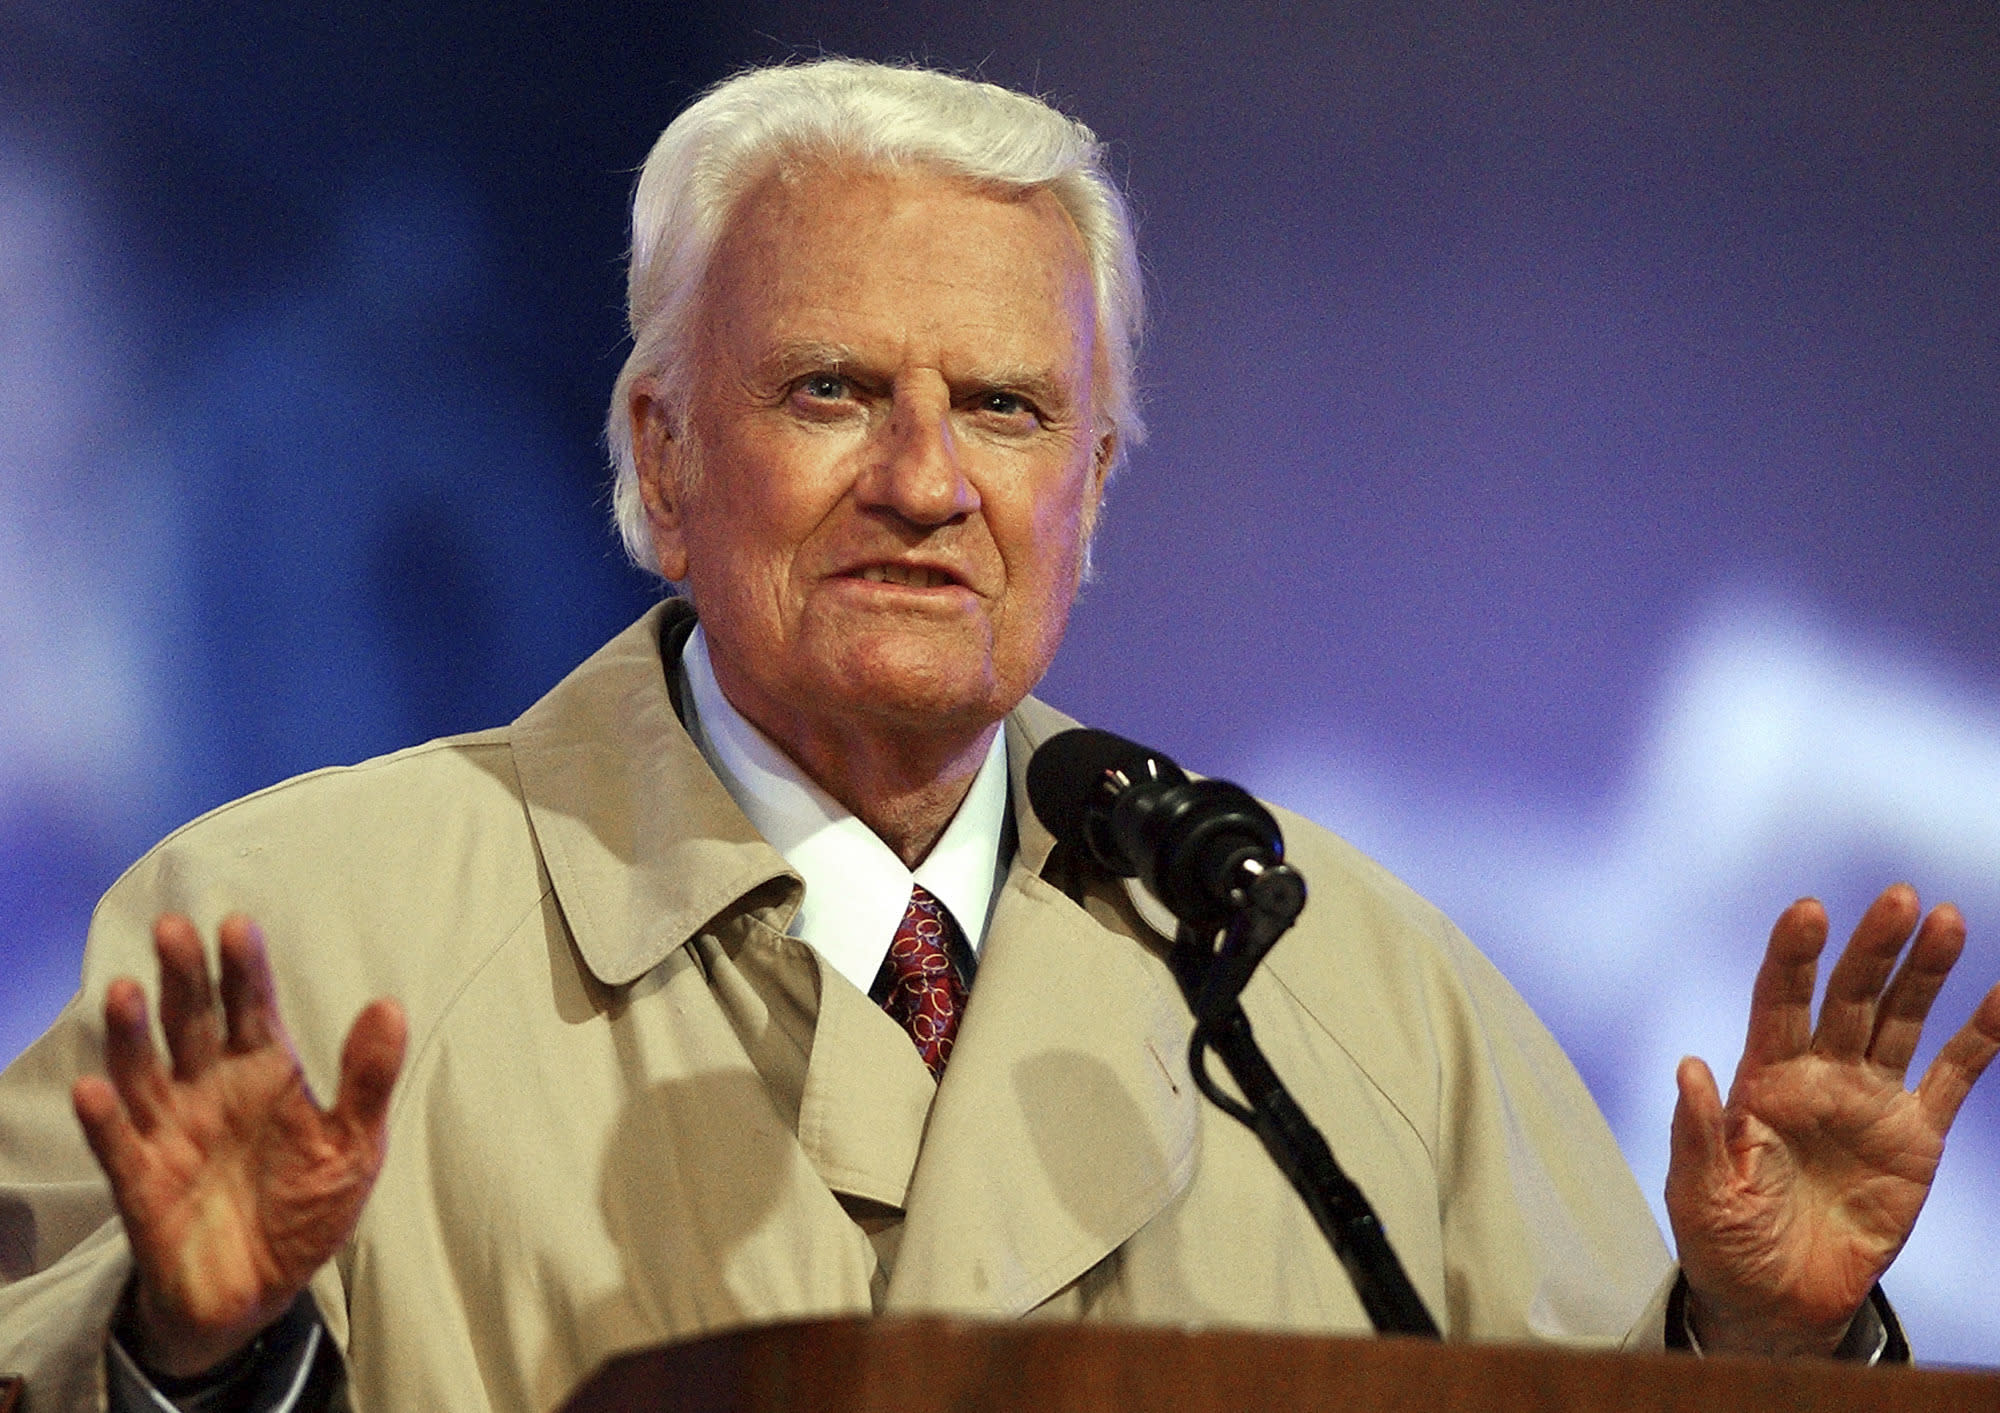 """FILE - In this May 9, 2003, file photo, the Rev. Billy Graham quiets the crowd during the second day of his Mission San Diego revival at Qualcomm Stadium in San Diego. President Donald Trump has visions of establishing by the final months of his second term—should he win one—a """"National Garden of American Heroes"""" that will pay tribute to some of the prominent figures in the nation's history, including Rev. Graham, that he sees as the """"greatest Americans to ever live."""" The president unveiled his plan Friday, July 3, 2020, during his speech at Mount Rushmore National Memorial, S.D. (AP Photo/Denis Poroy, File)"""